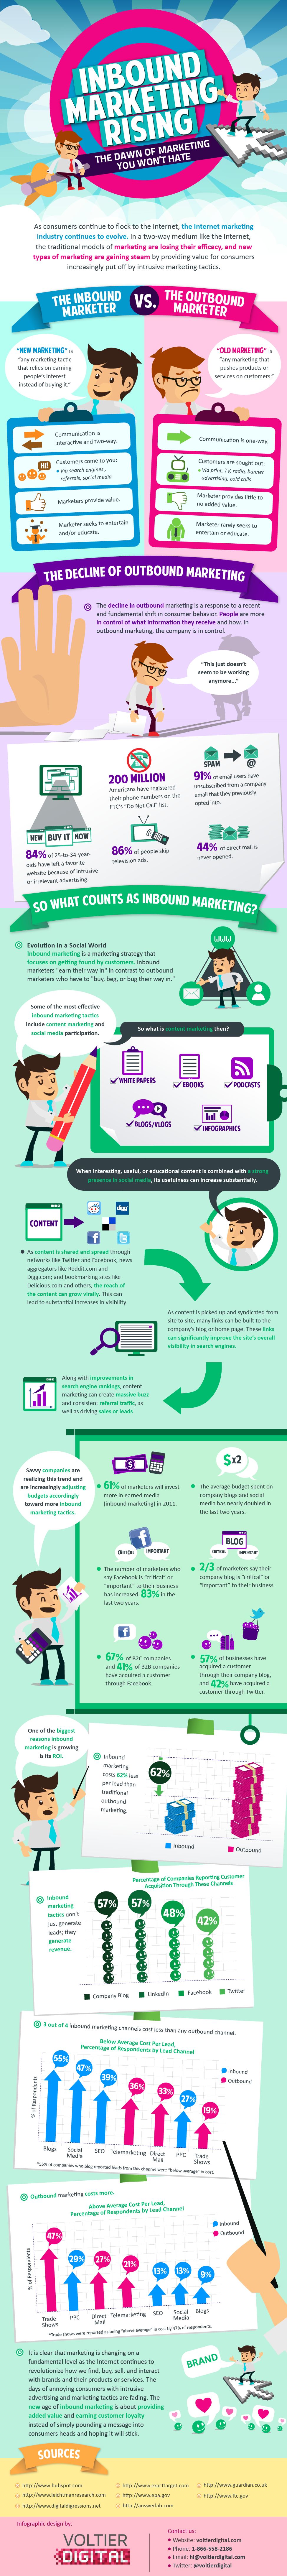 Inbound Marketing Rising Final2 INFOGRAPHIC: Inbound vs. Outbound Marketing